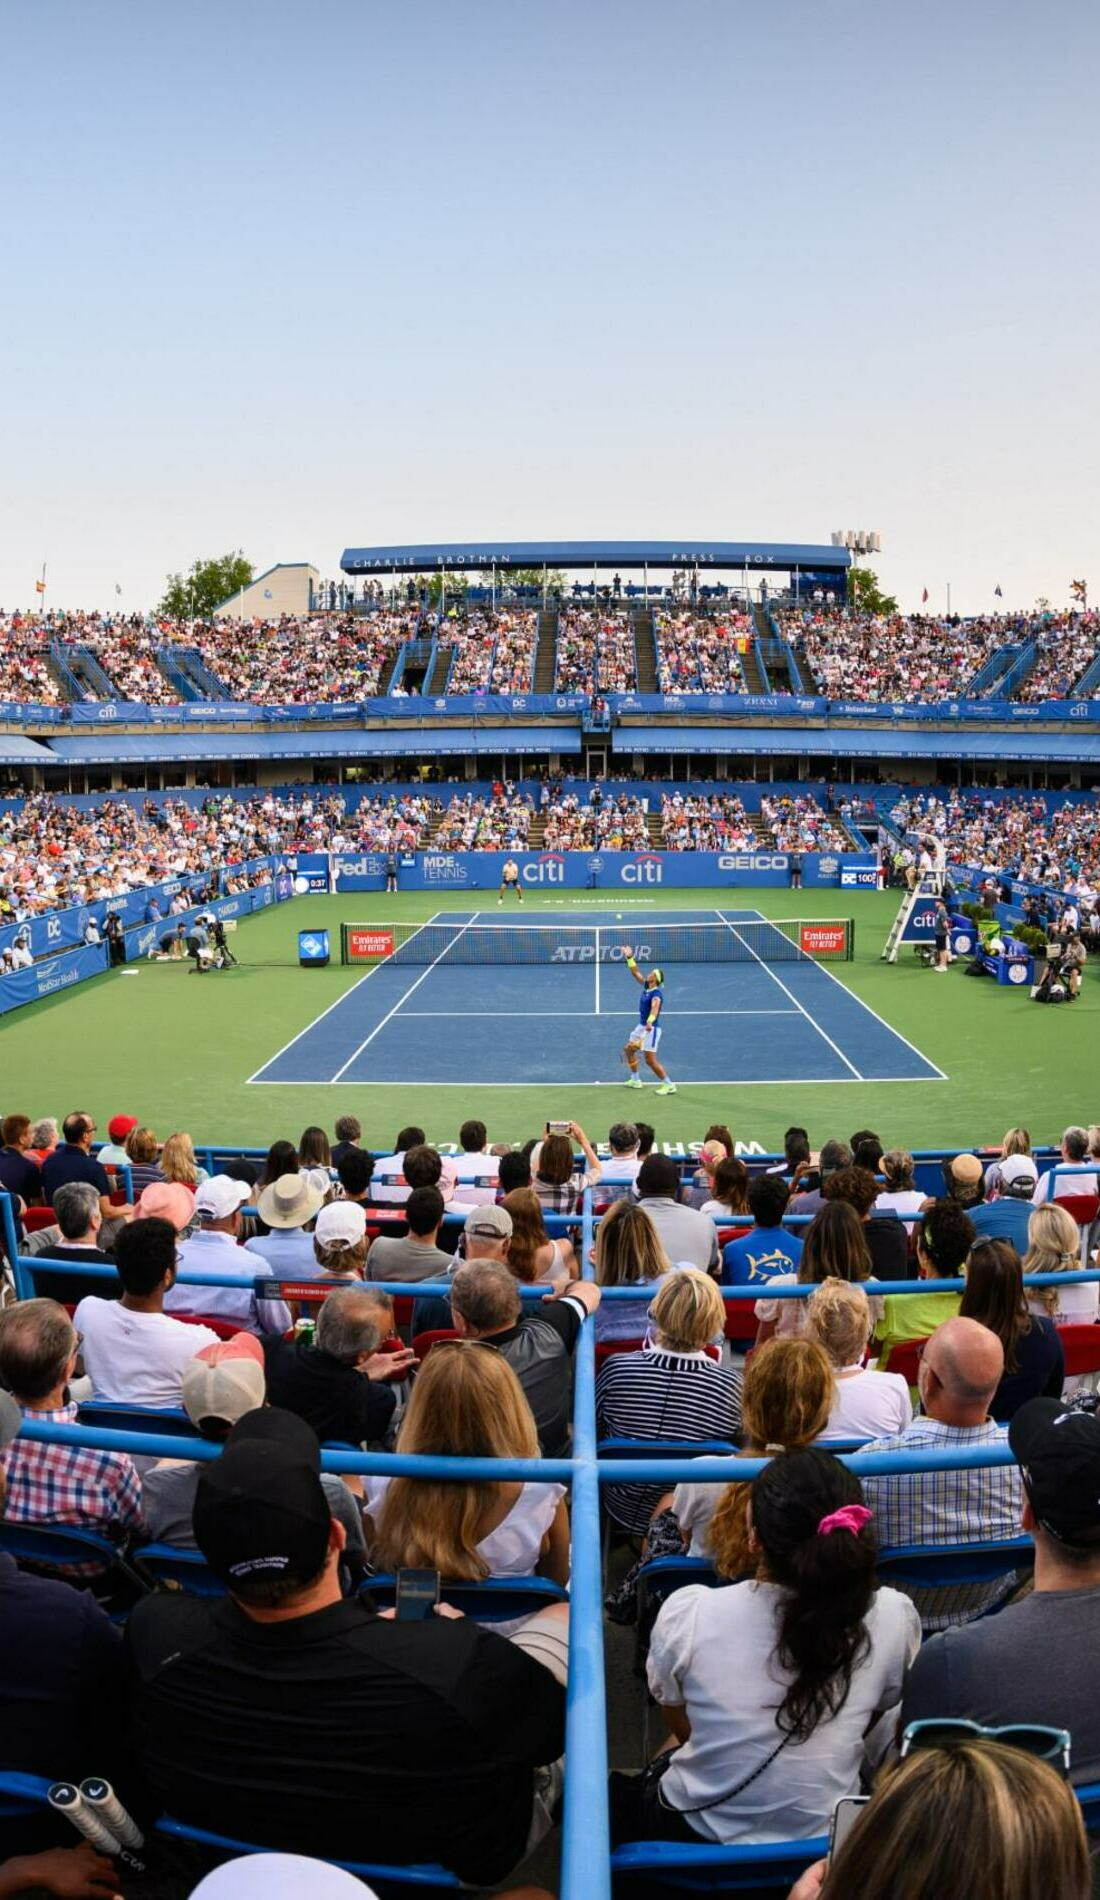 A Citi Open Tennis live event